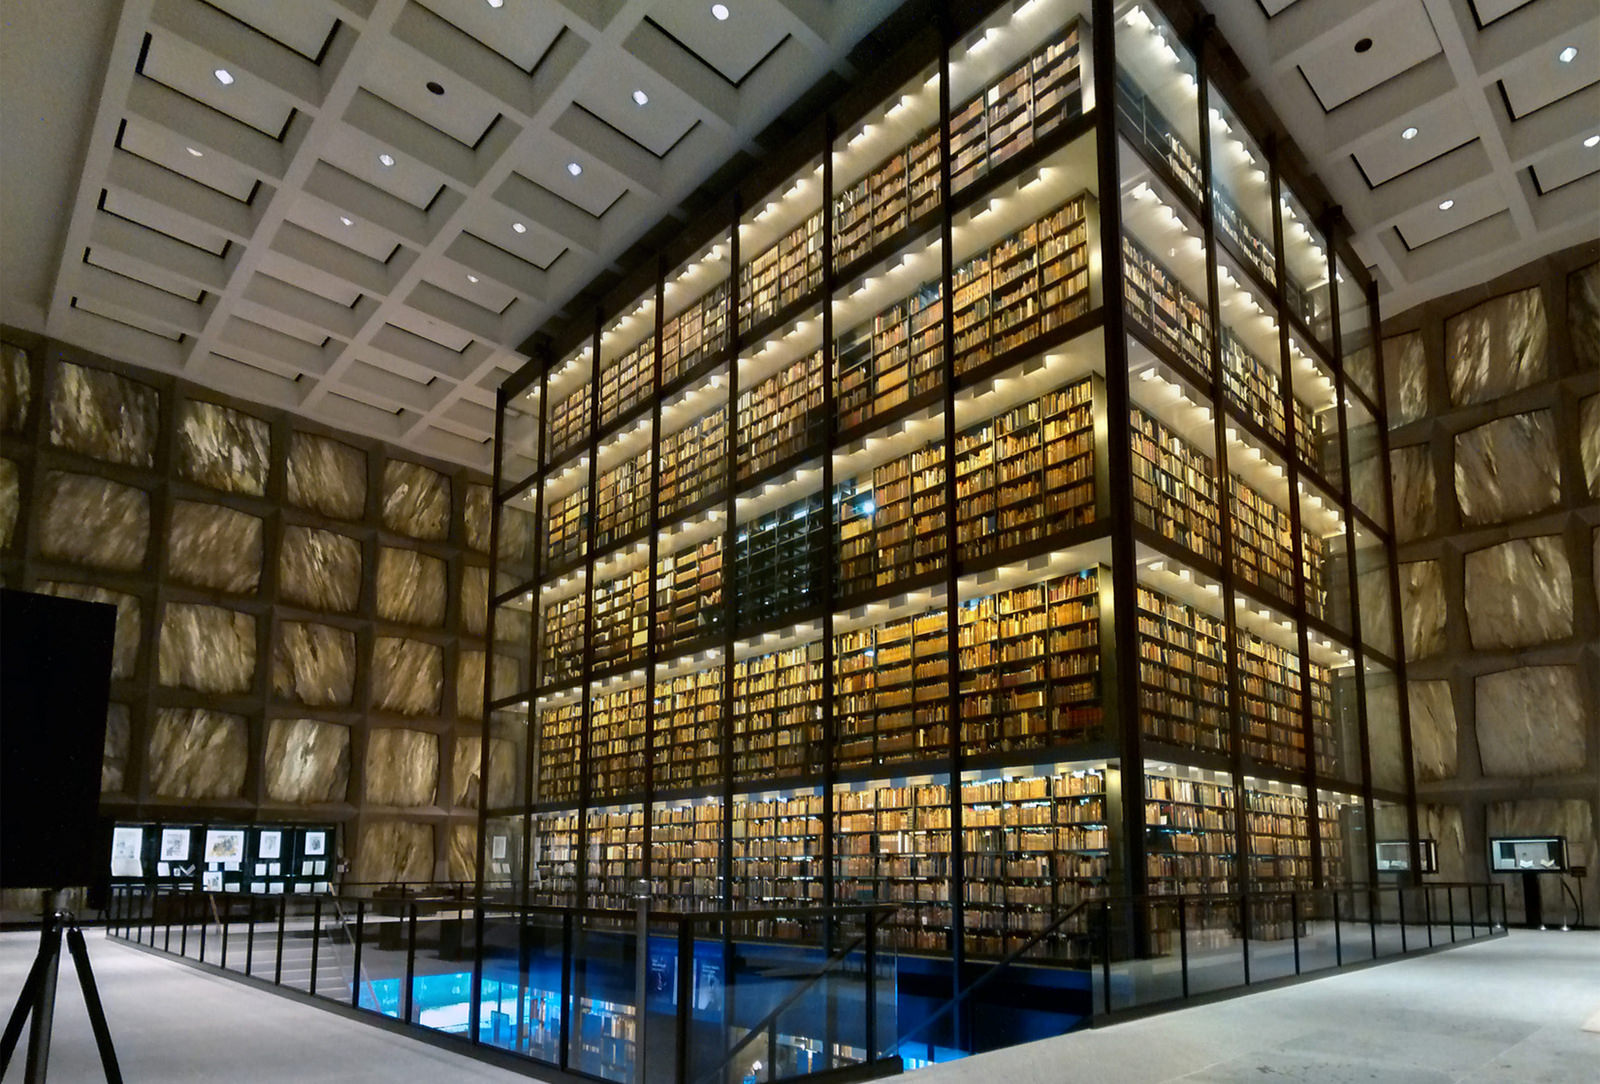 Beinecke Rare Book & Manuscript Library Interior